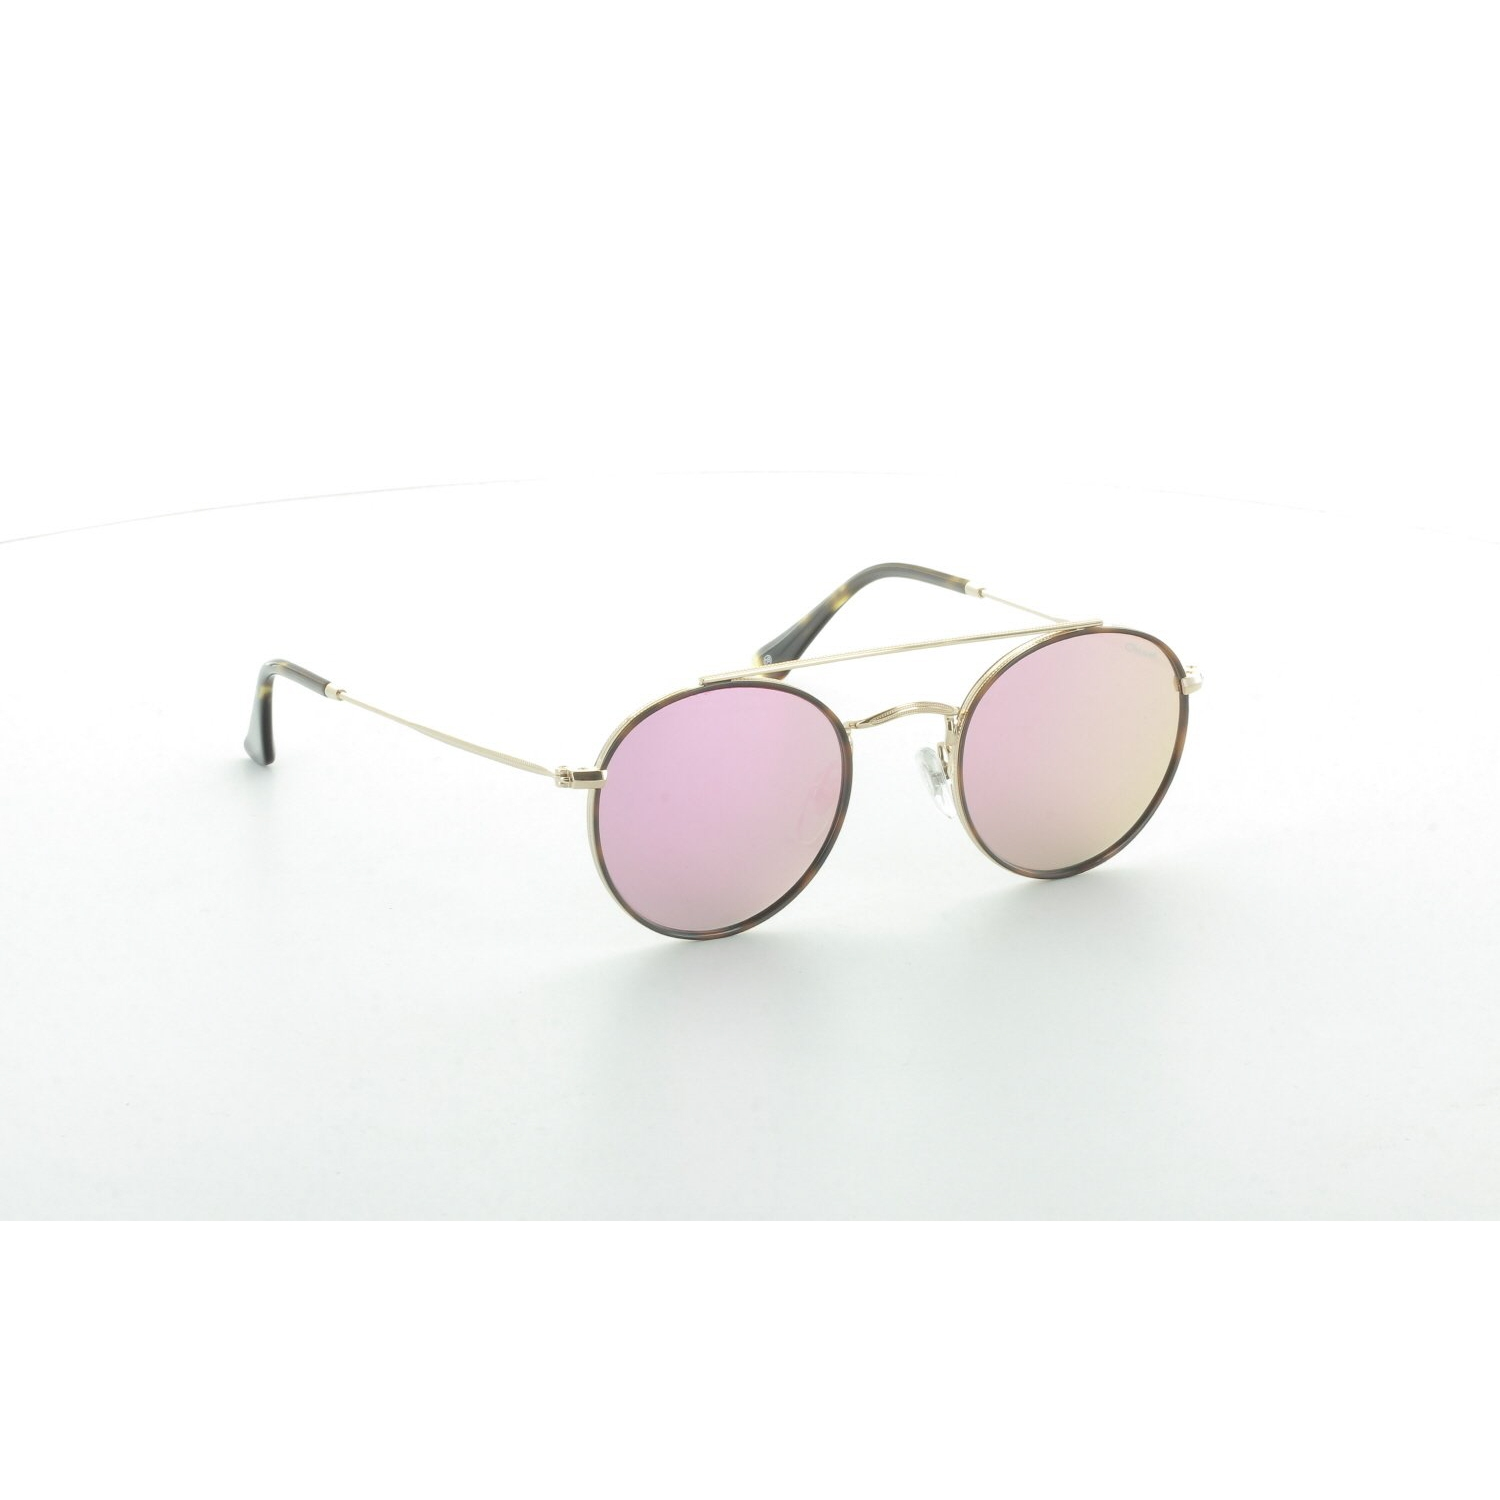 Unisex sunglasses os 2496 02 metal brown crystal oval aval 49-21-145 osse